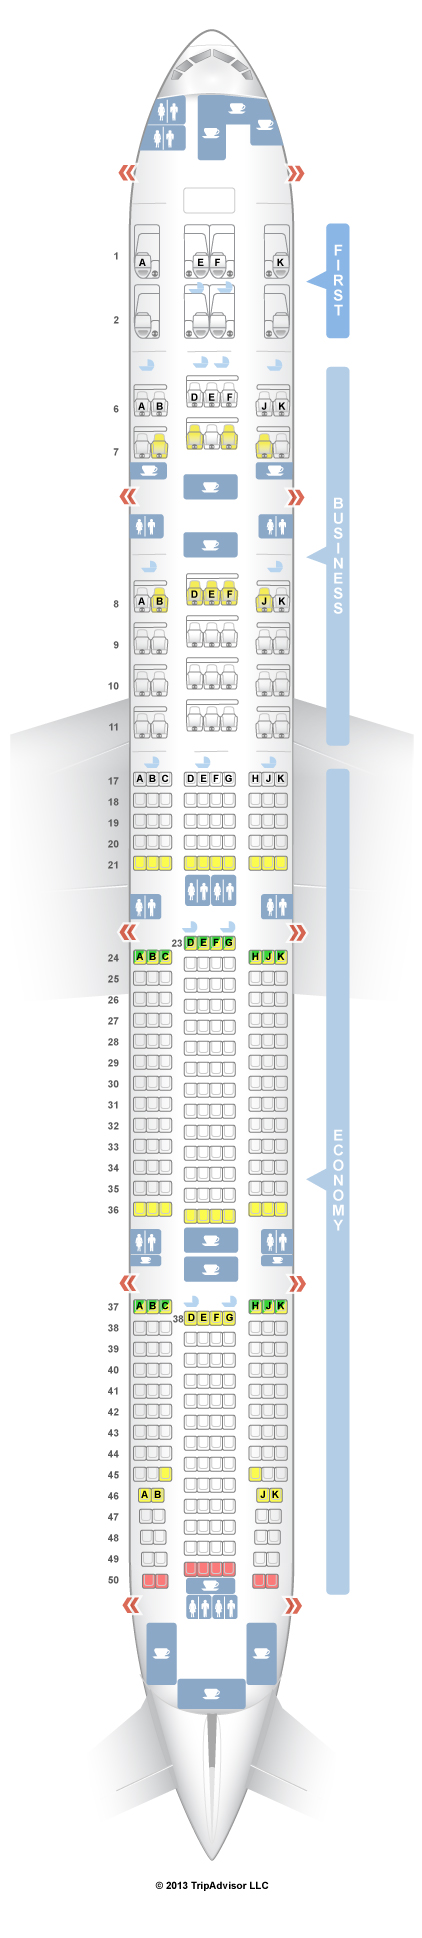 SeatGuru Seat Map Emirates Boeing 777-300ER (77W) Three Cl V2 ... on